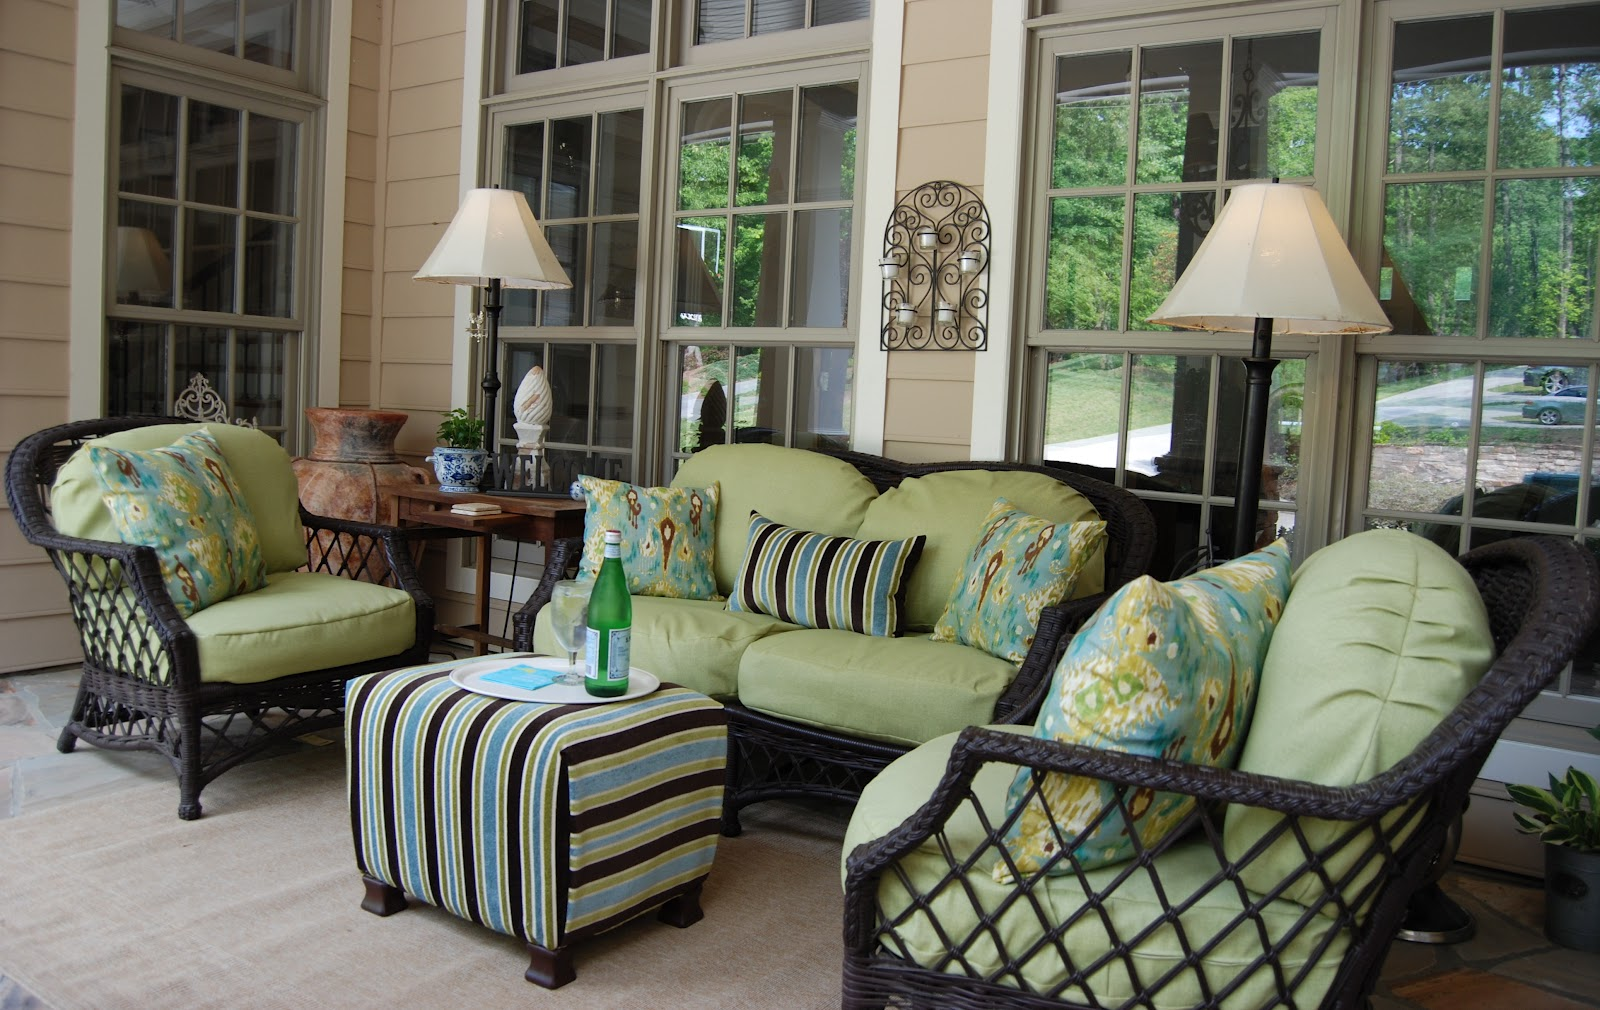 imparting grace furnishing an outdoor room make your own ottoman. Black Bedroom Furniture Sets. Home Design Ideas